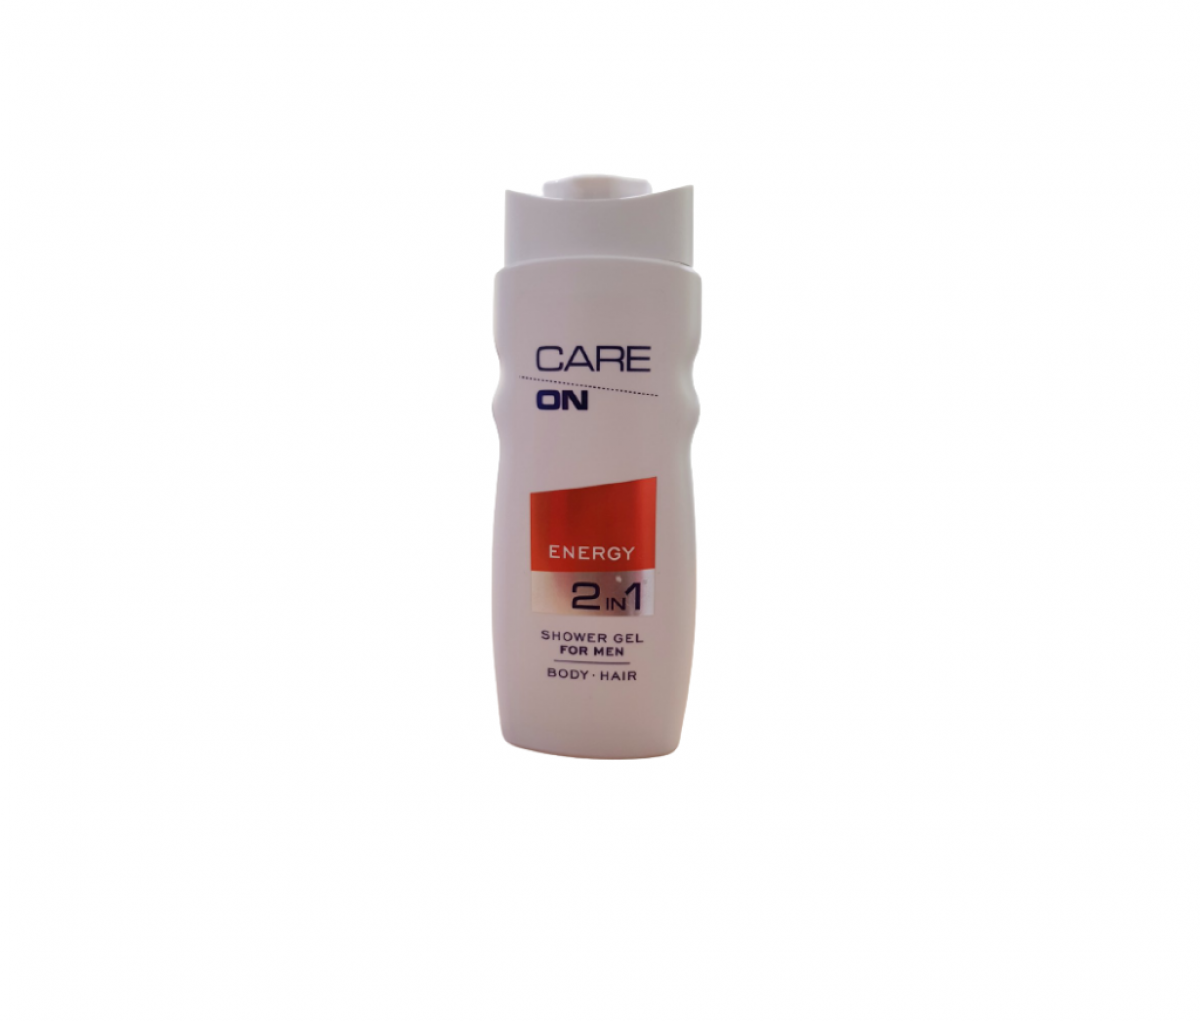 TZMO CARE ON Shower Gel 2 in 1 Energy 500ml